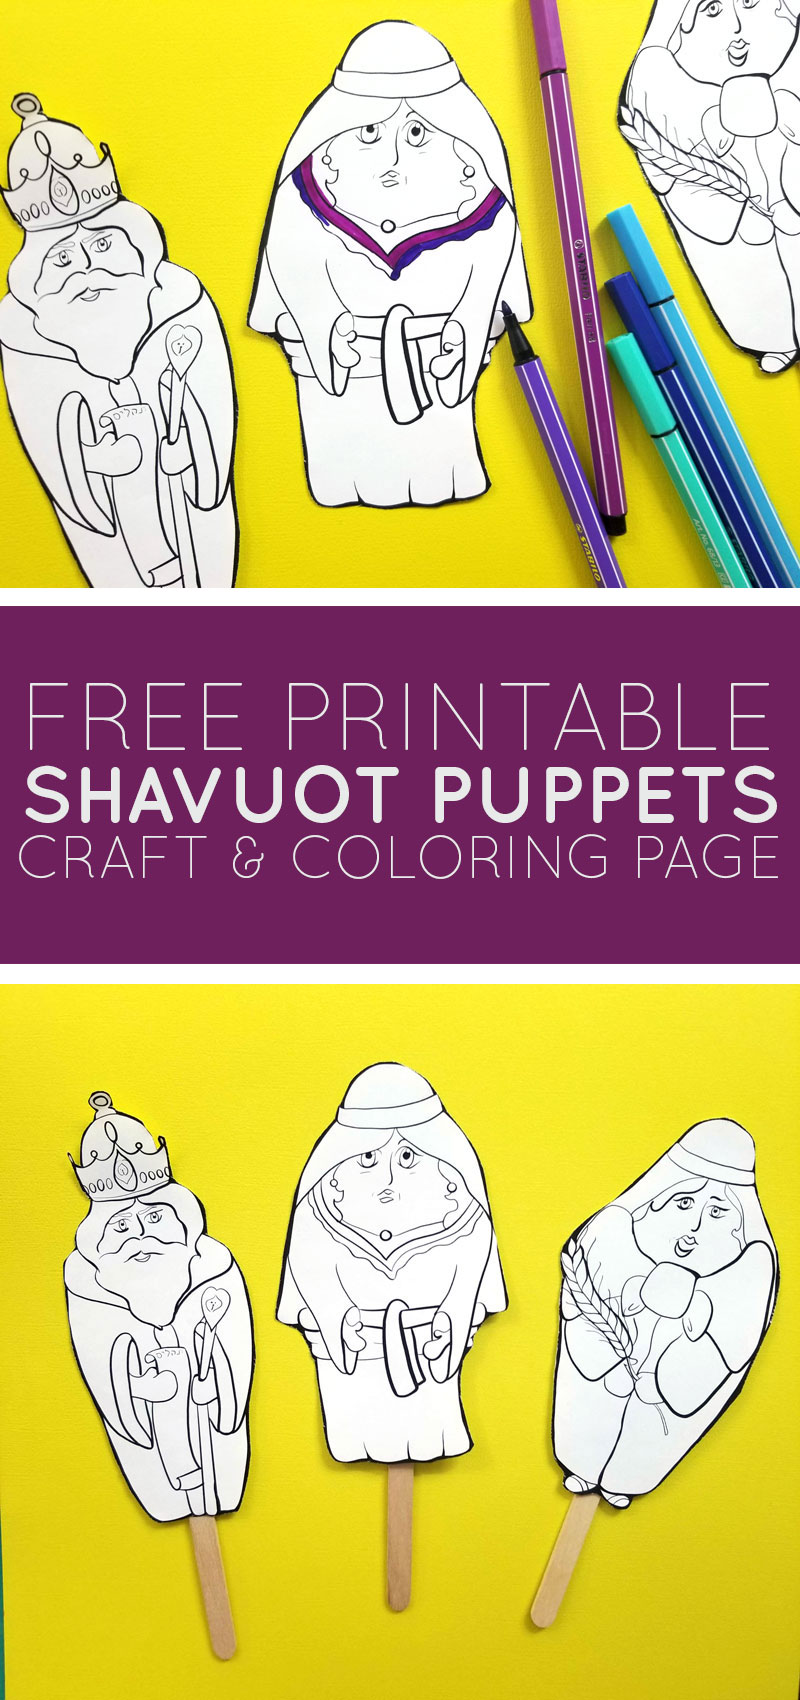 picture about Printable Puppets on a Stick referred to as Shavuot Coloring Puppets - Megillat Ruth Adhere Puppets Craft